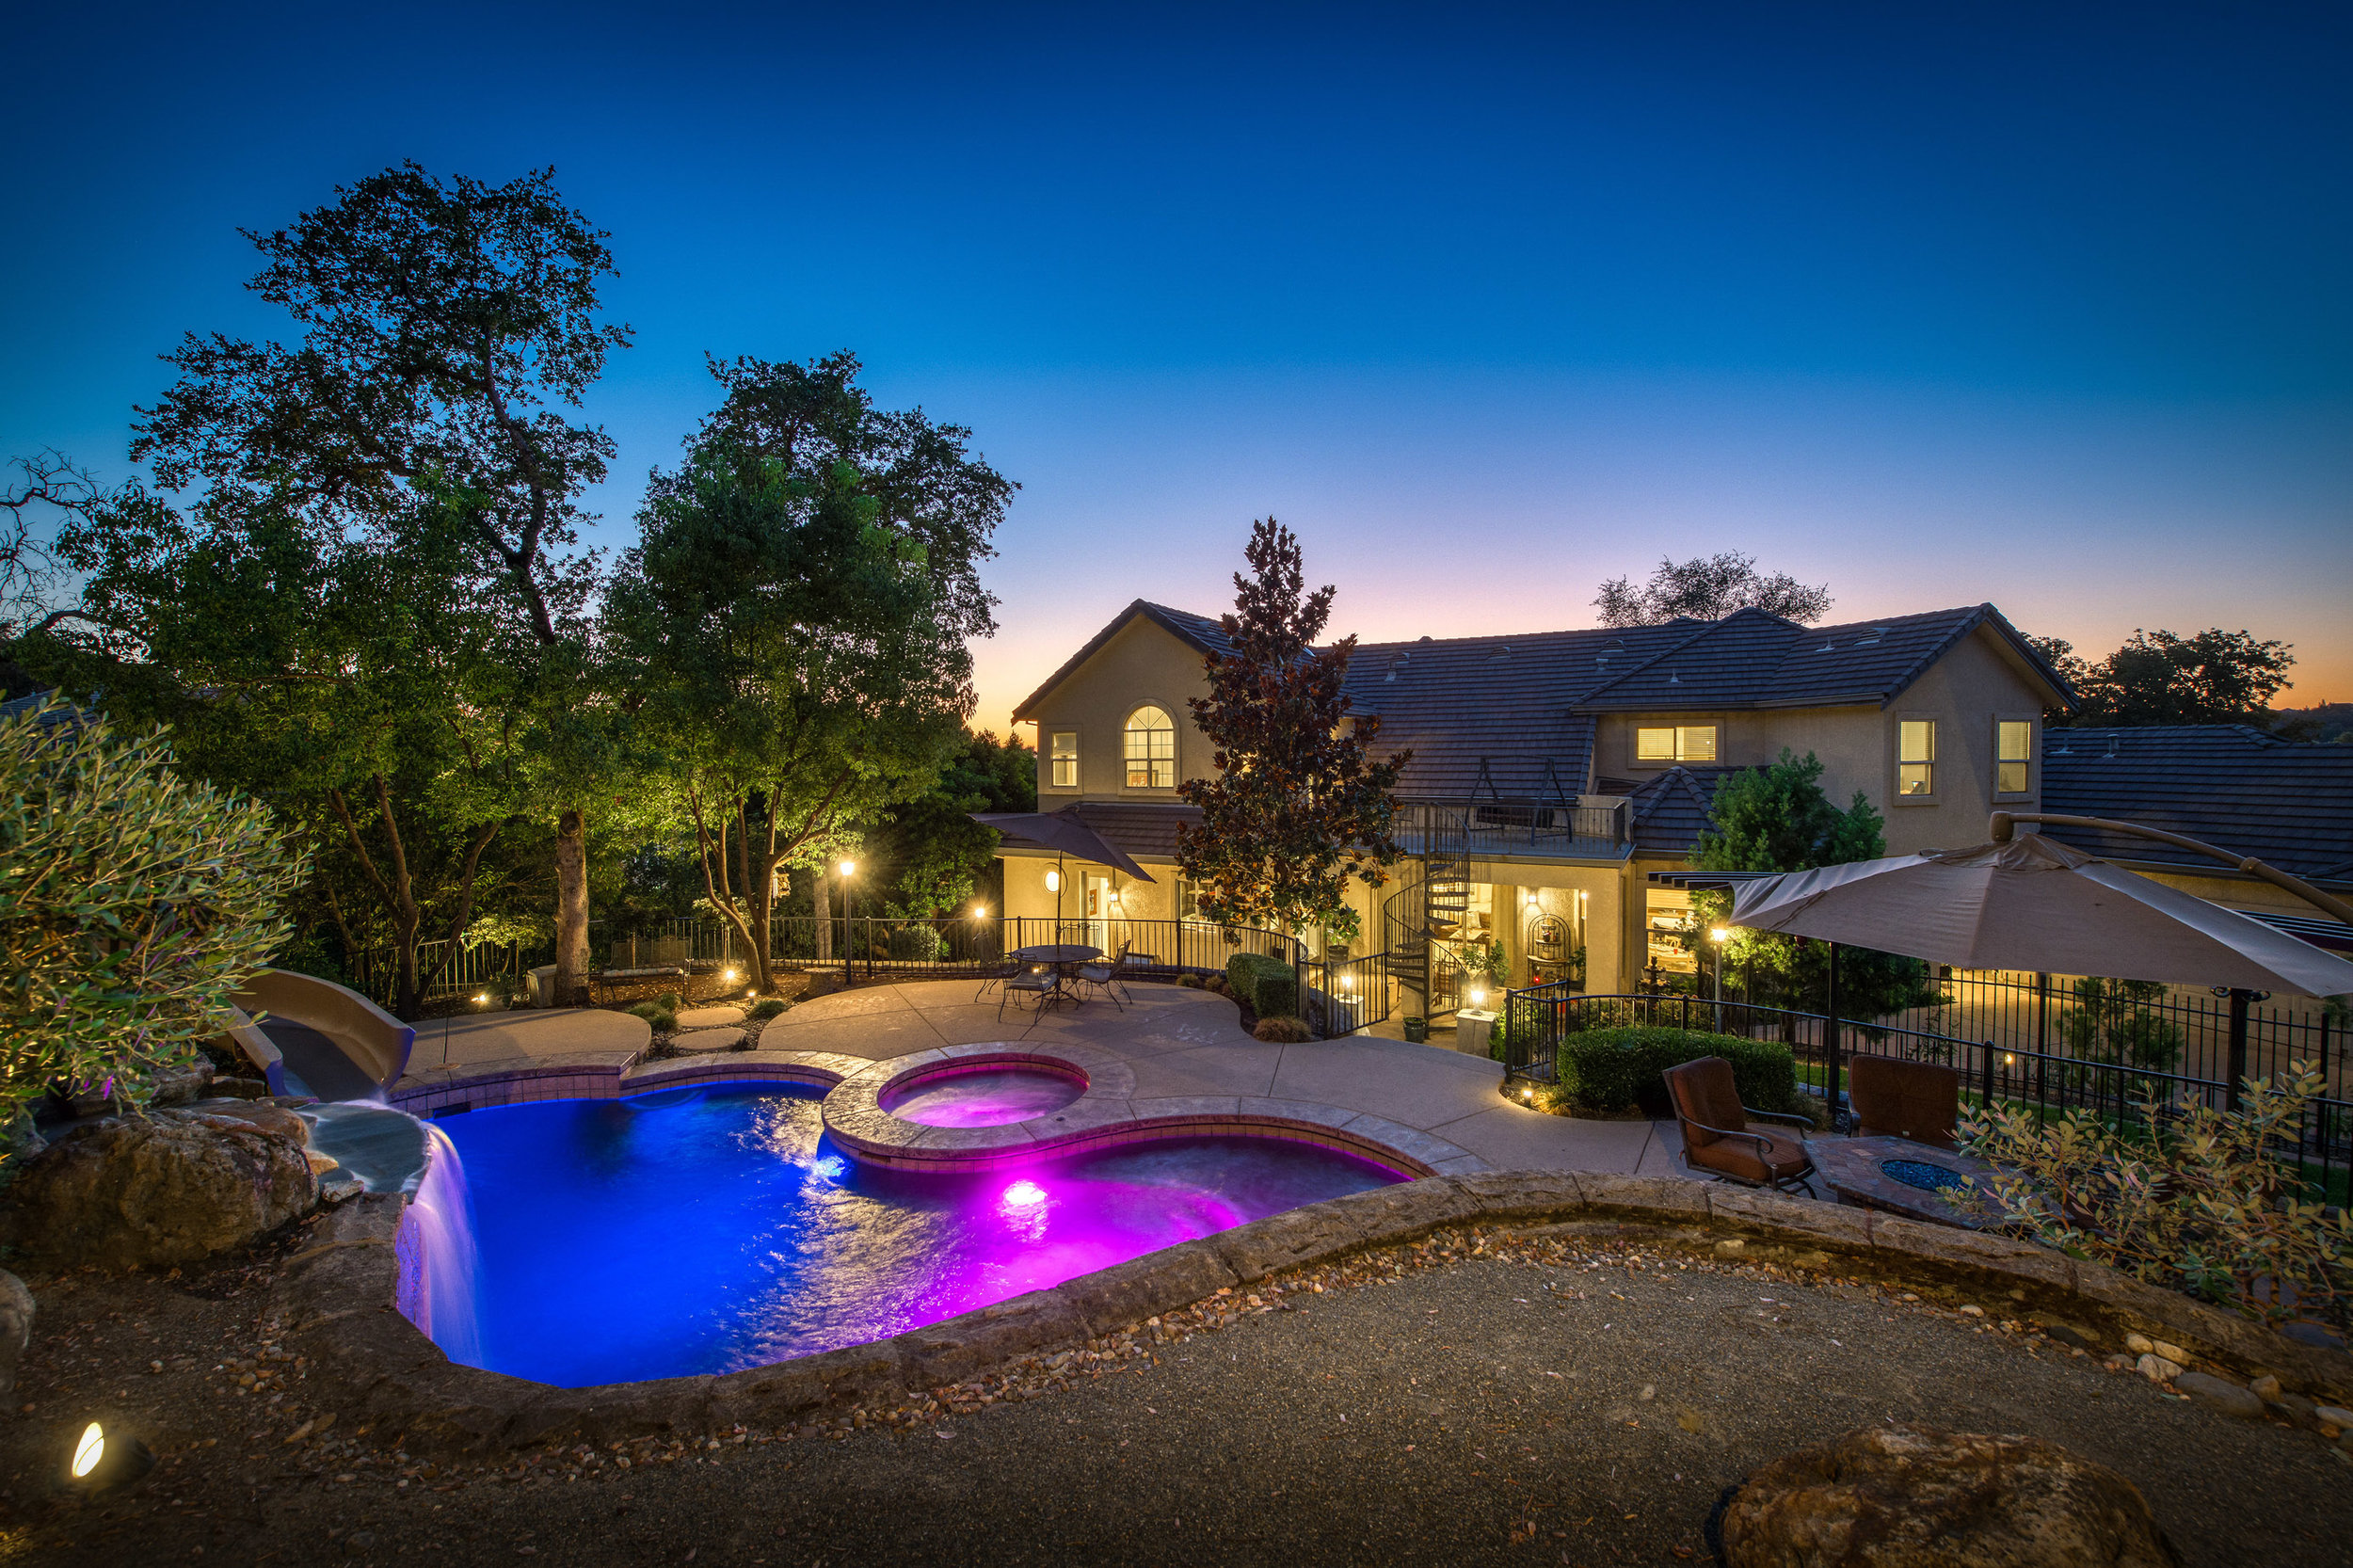 2330 Clubhouse Drive - Twilight - 14.jpg